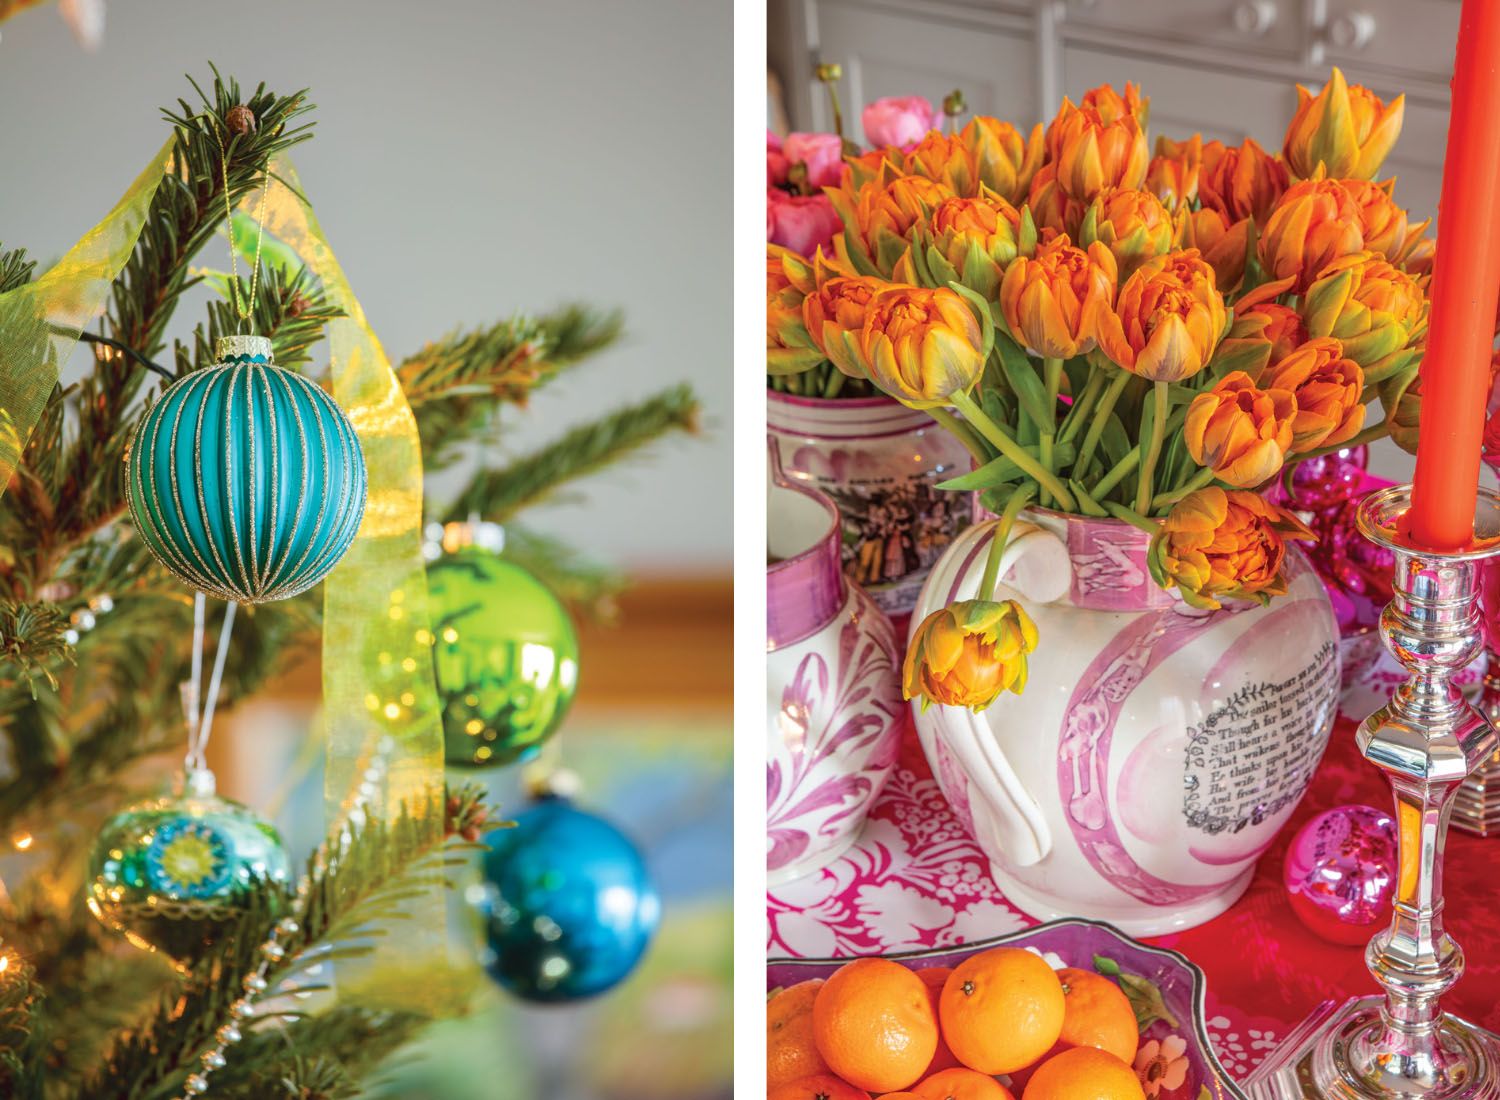 Blue and green ornaments on a Christmas tree; yellow-orange tulips in a vase